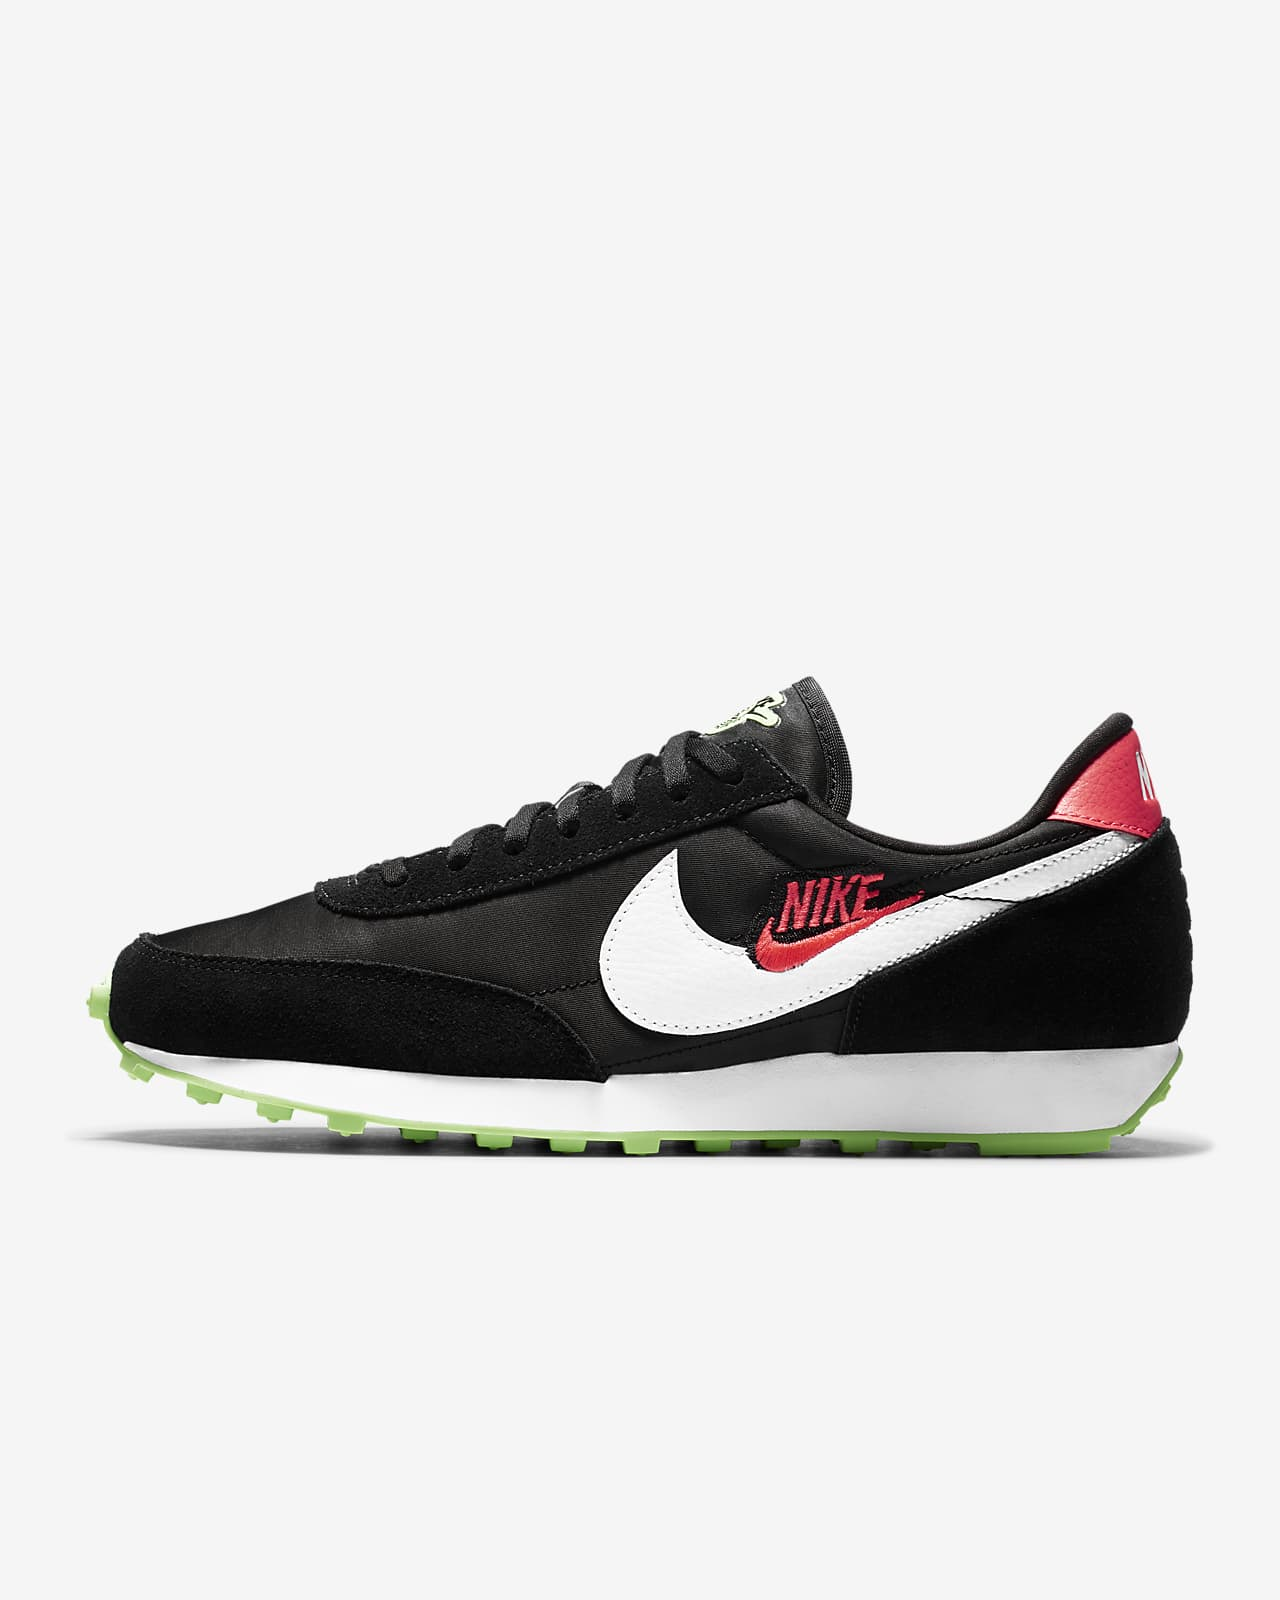 Nike Daybreak SE Women's Shoe